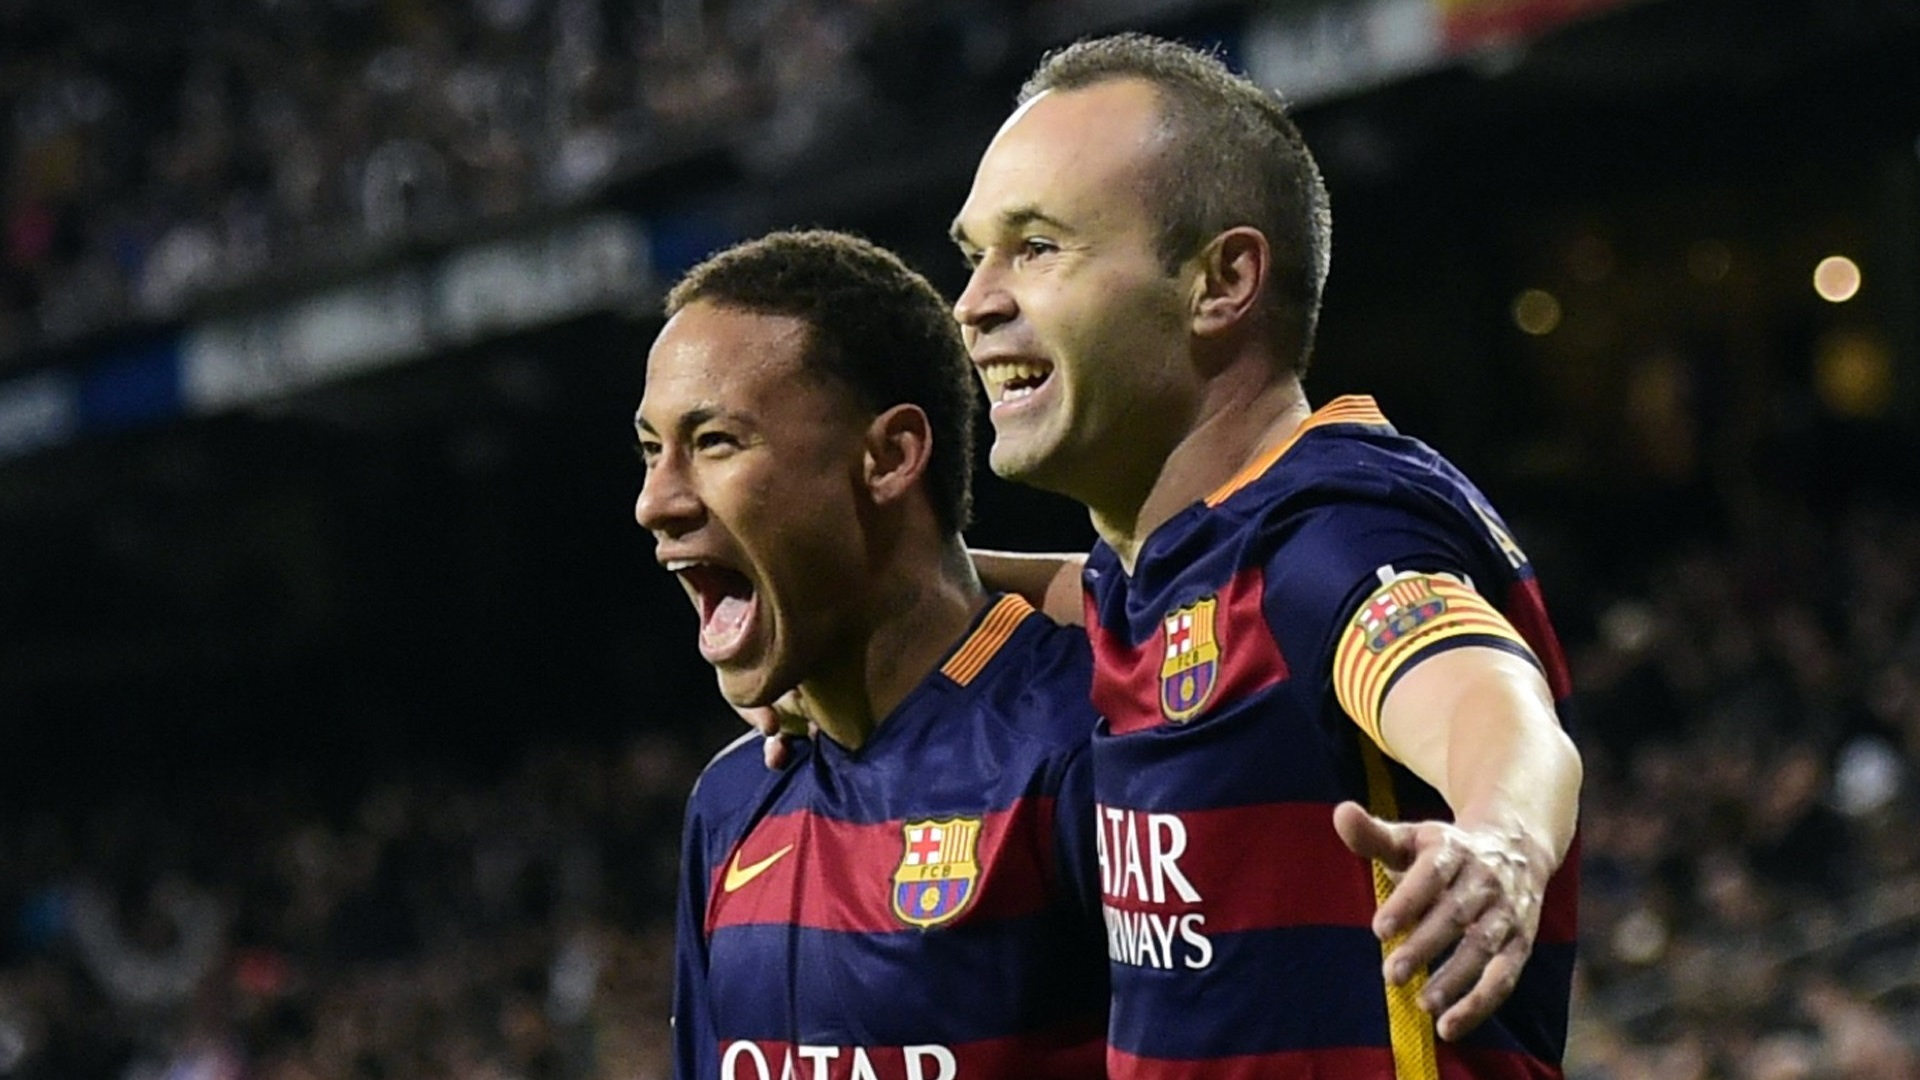 Neymar wouldn't fit in Barca team, Mourinho would be 'complicated' - Iniesta questions transfer rumours